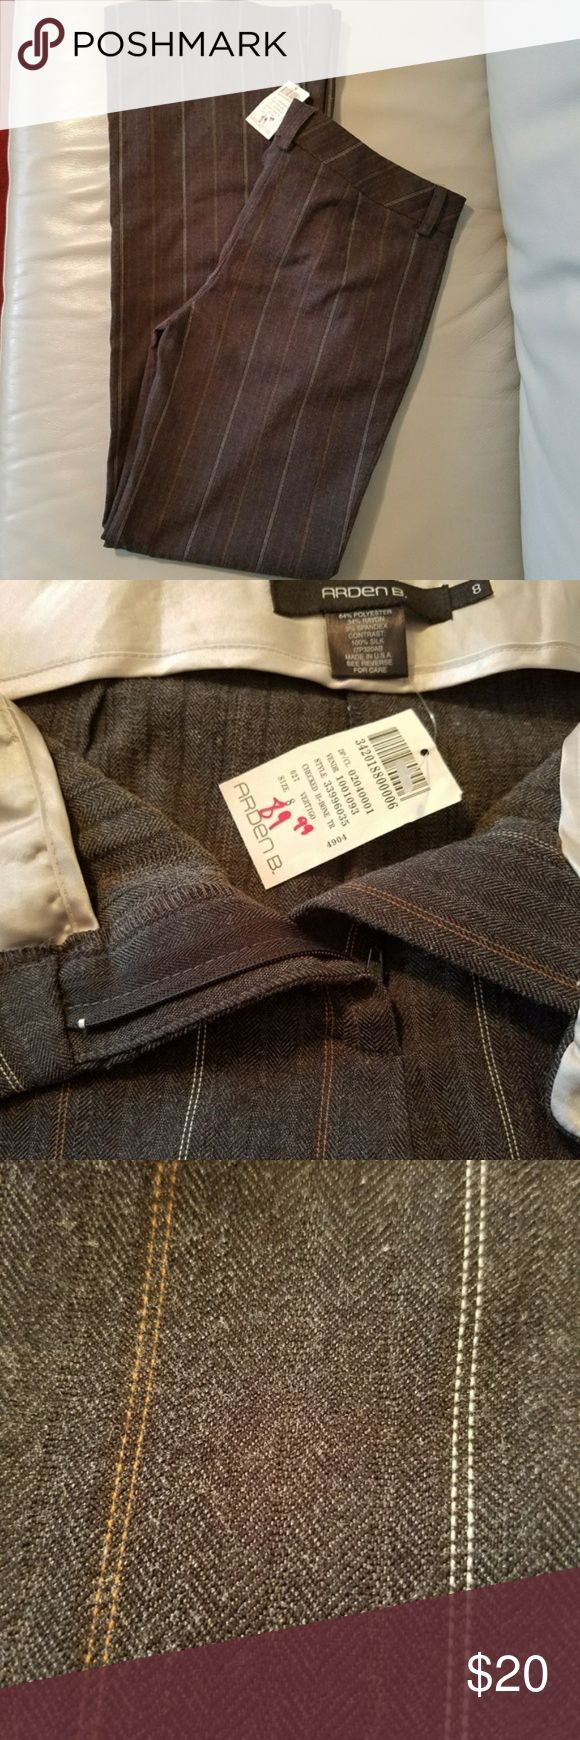 """NWT, Arden B, Gray Pinstripe Trouser, 8 33 x 33 New with tags!  These were purchased on sale for $89.  Gray pinstripe trouser with small white and orange stripes.  33"""" Waist, 33"""" Inseam, 10"""" Rise, 21"""" Leg Opening, 21"""" Thigh (All measurements are approximate.)  64% Polyester 34% Rayon 2% Spandex Arden B Pants Trousers"""